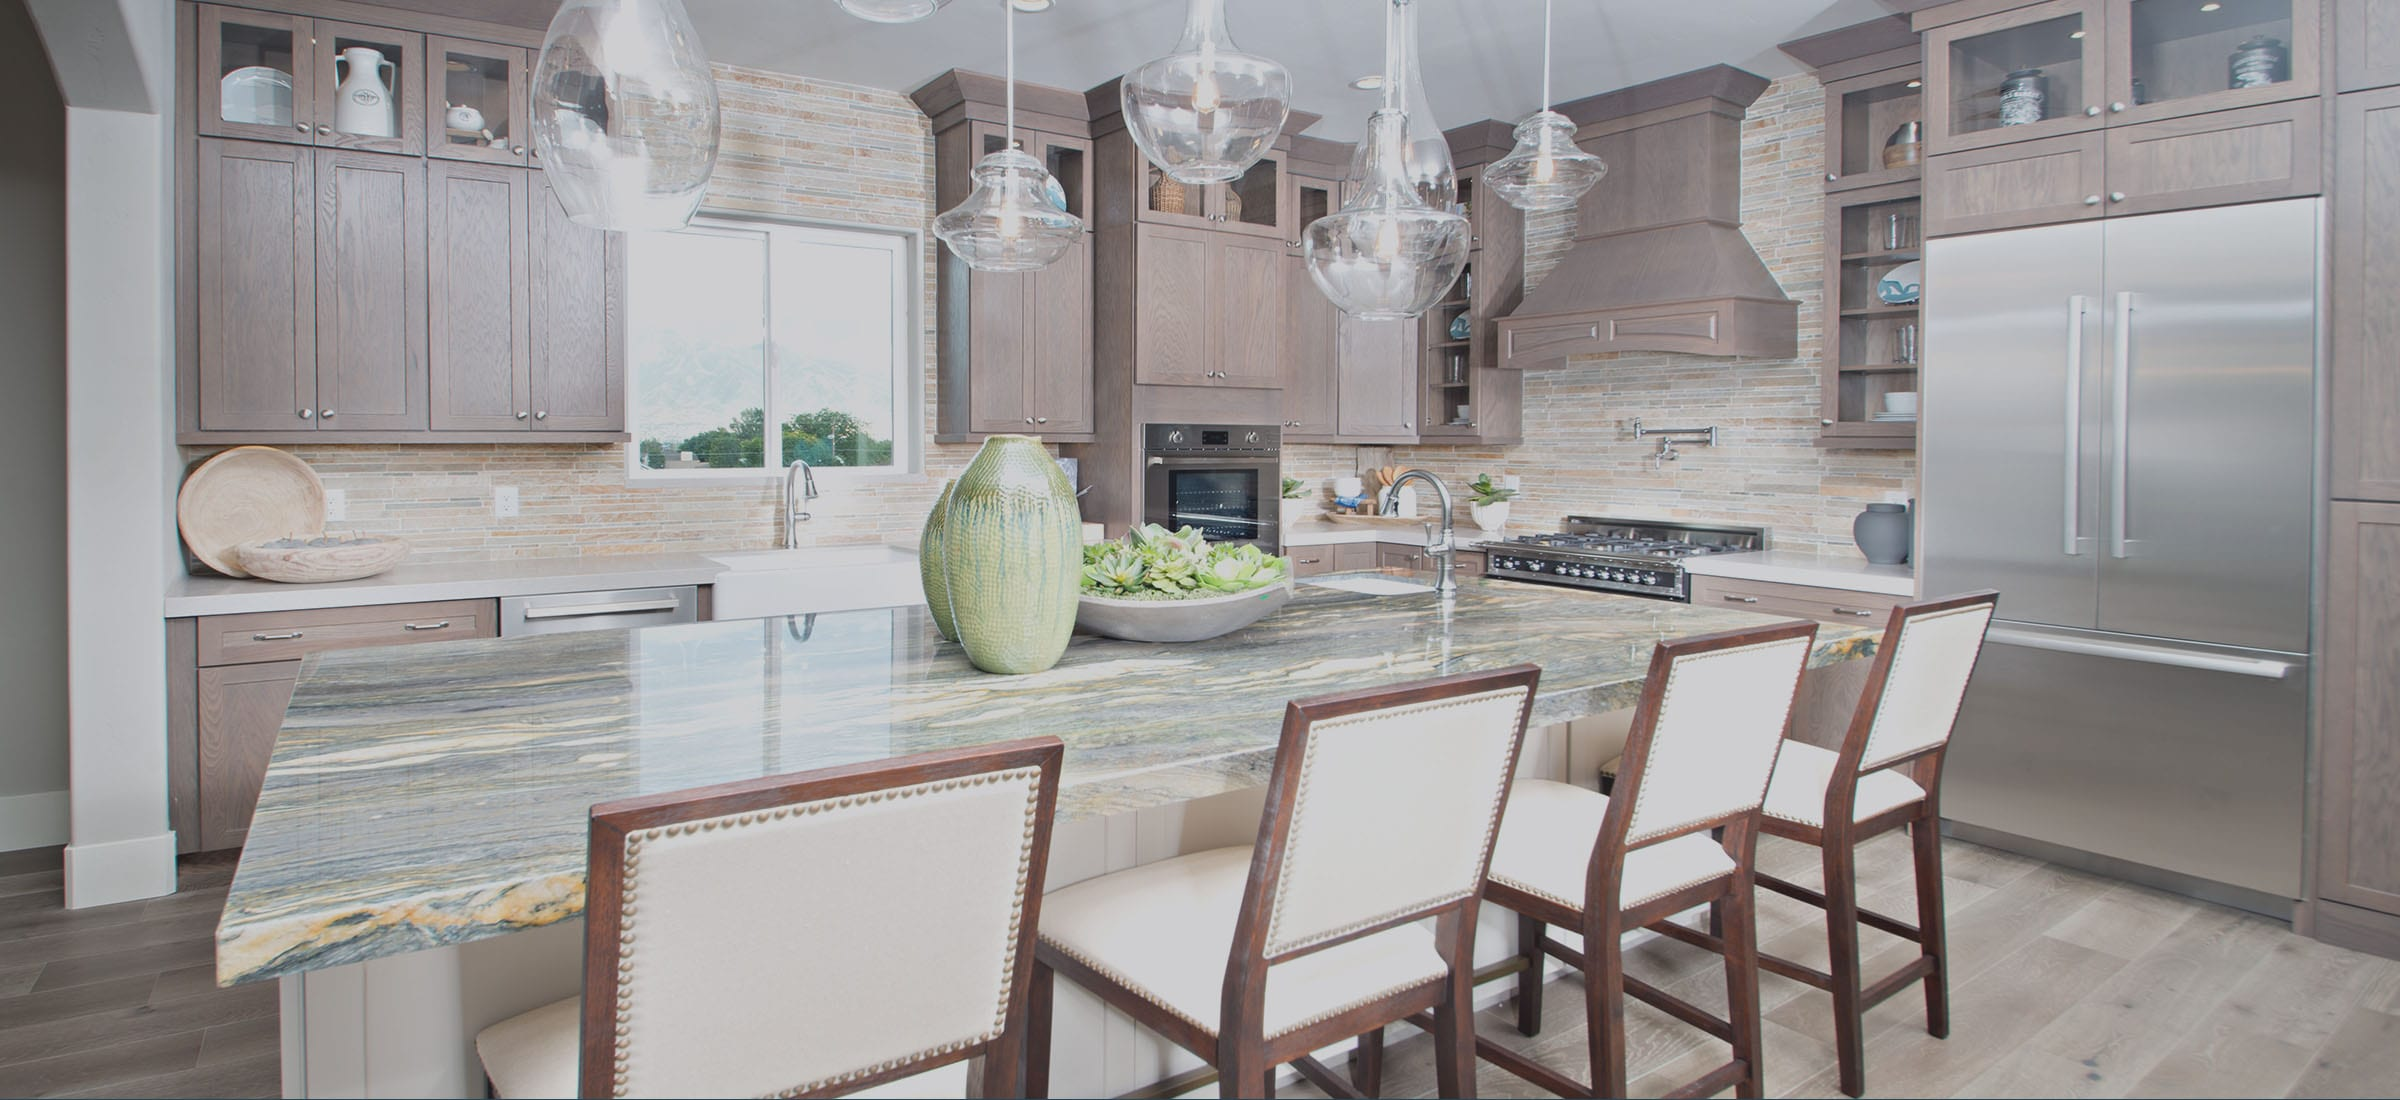 Pleasing Chris Dicks An Ilg Company Utahs Cabinets And Download Free Architecture Designs Ponolprimenicaraguapropertycom